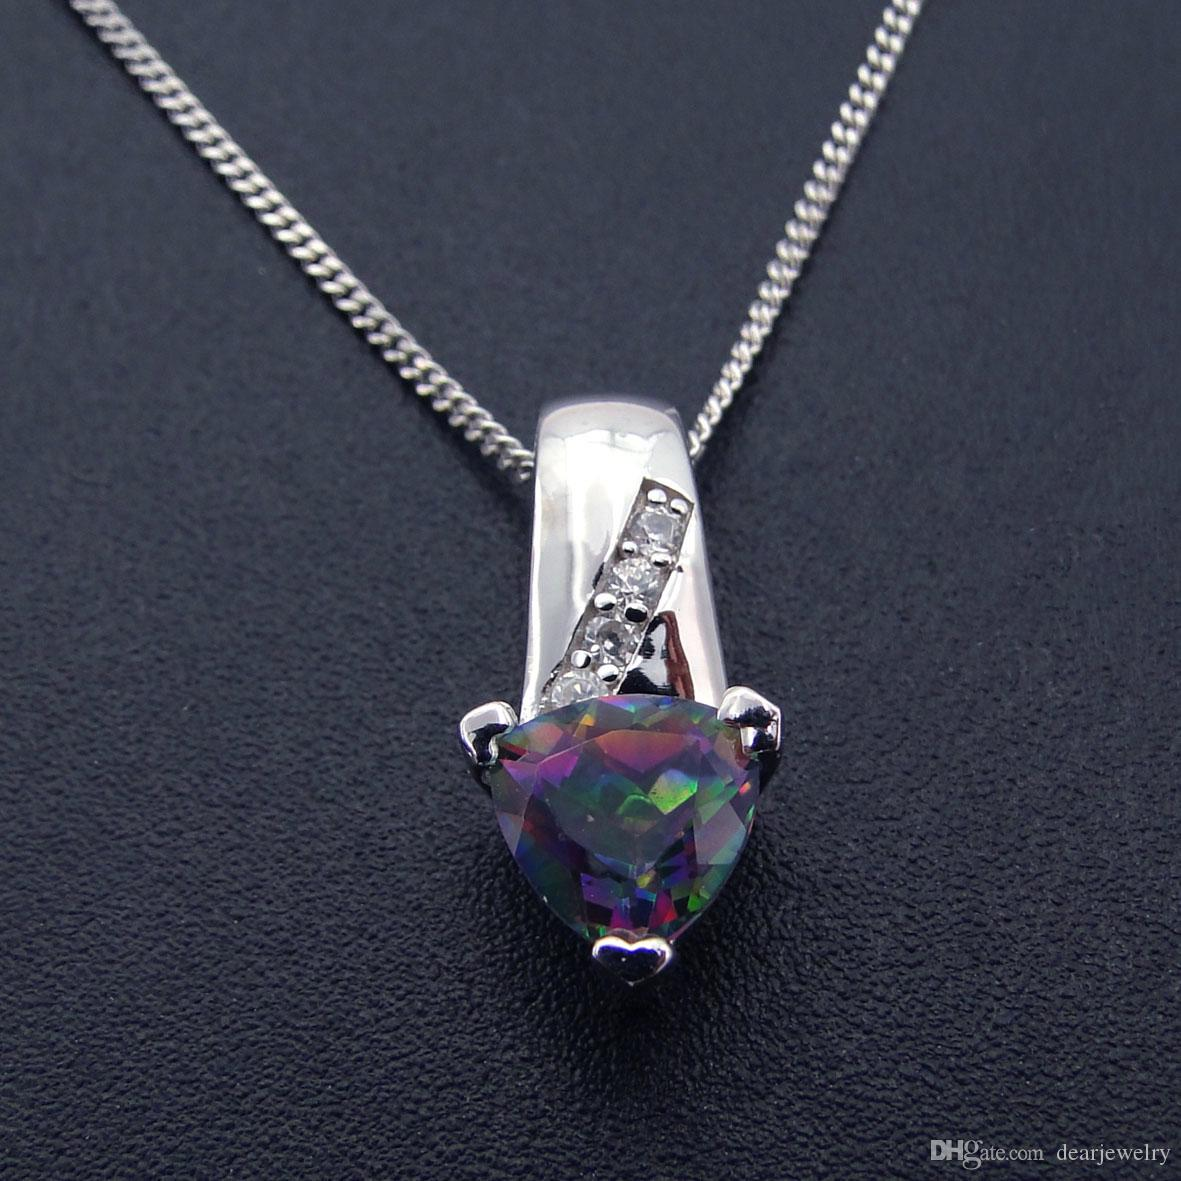 f65344b682e8c Fashion jewelry 925 Sterling Silver Mystery topaz zircon Pendant Rhodium  plated Engagement gift DR01407177P Free Shipping